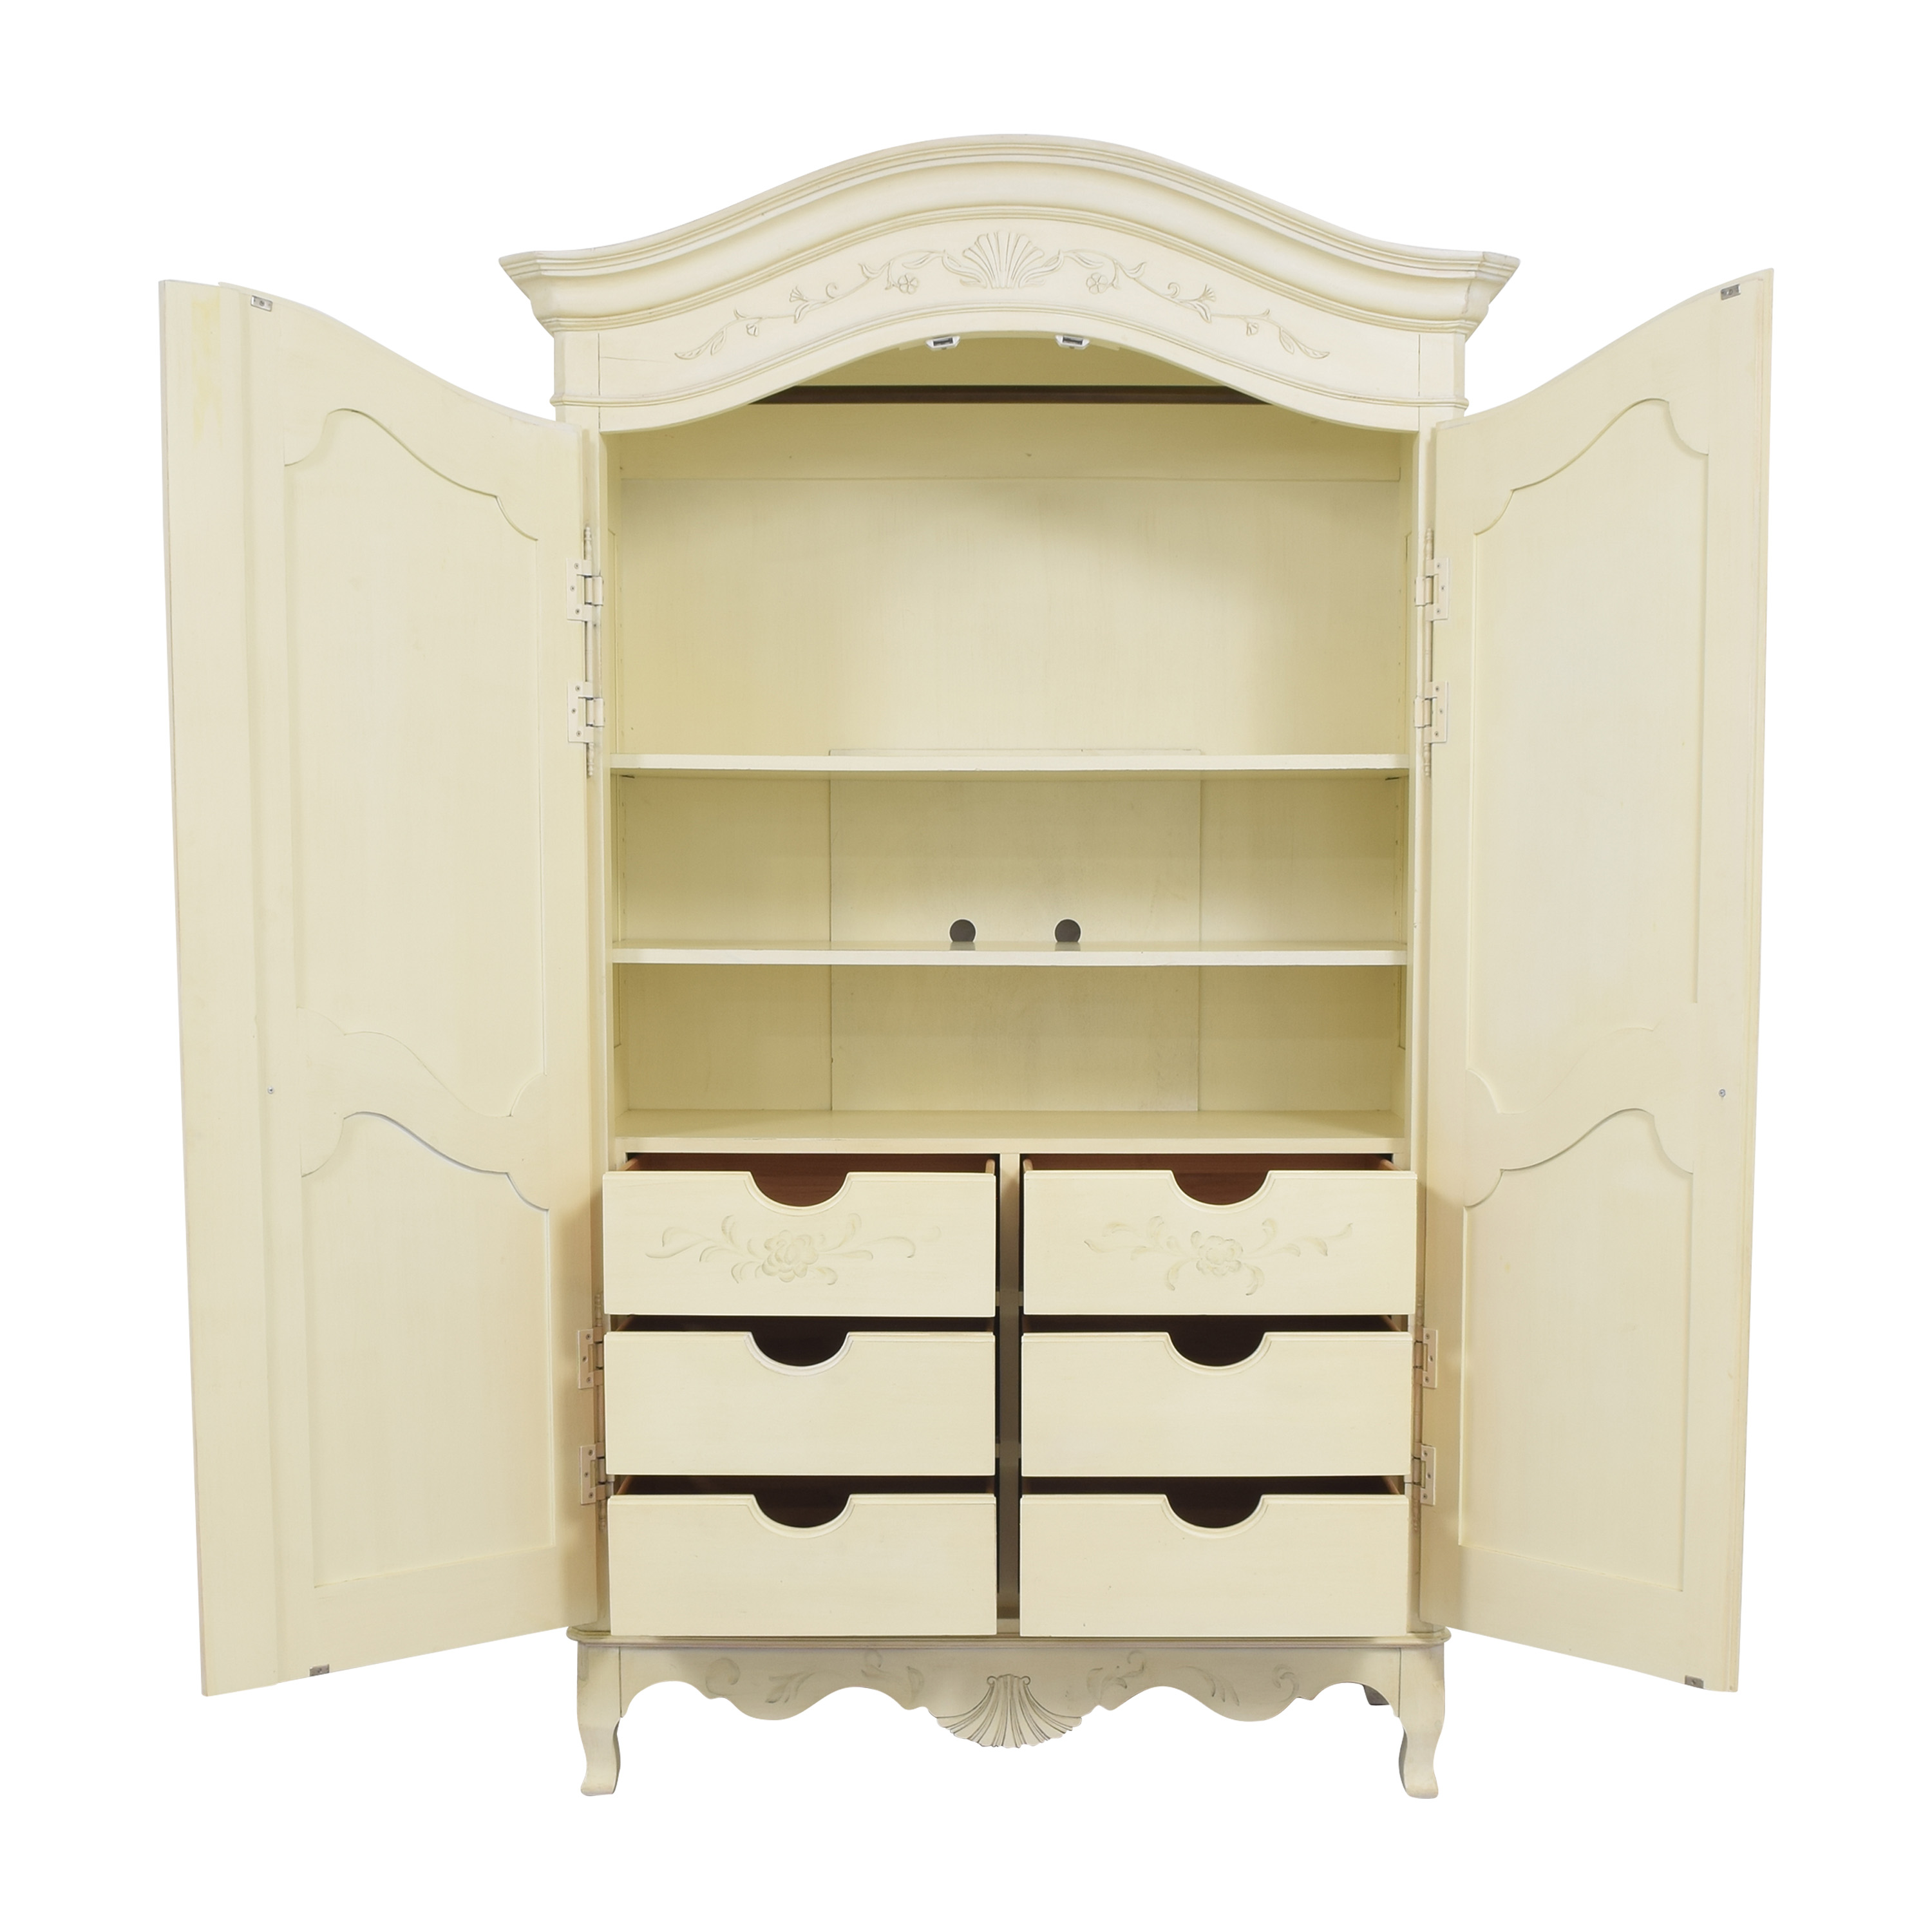 Ethan Allen Ethan Allen Decorated Country French Armoire for sale